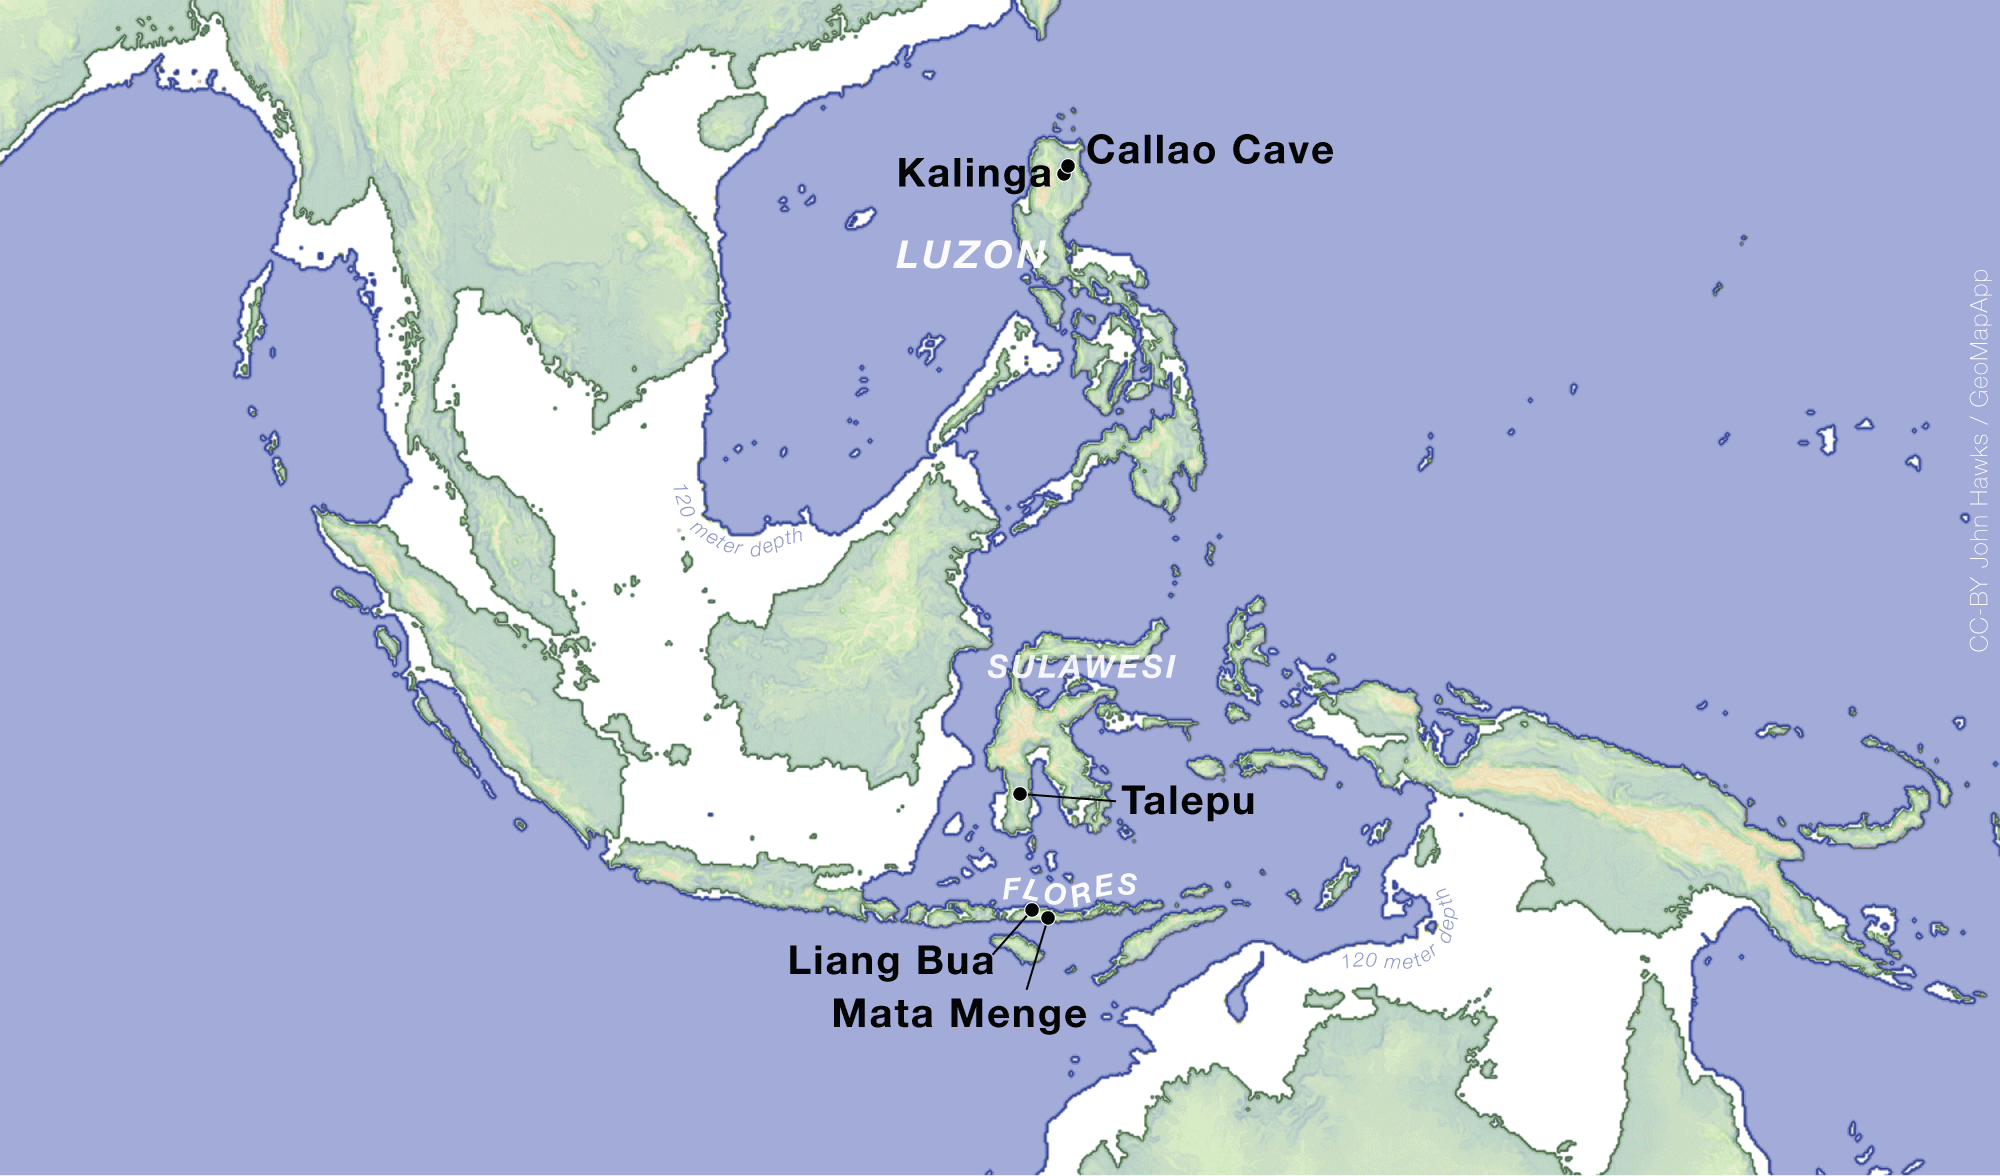 Map of island southeast Asia indicating sites discussed in the text